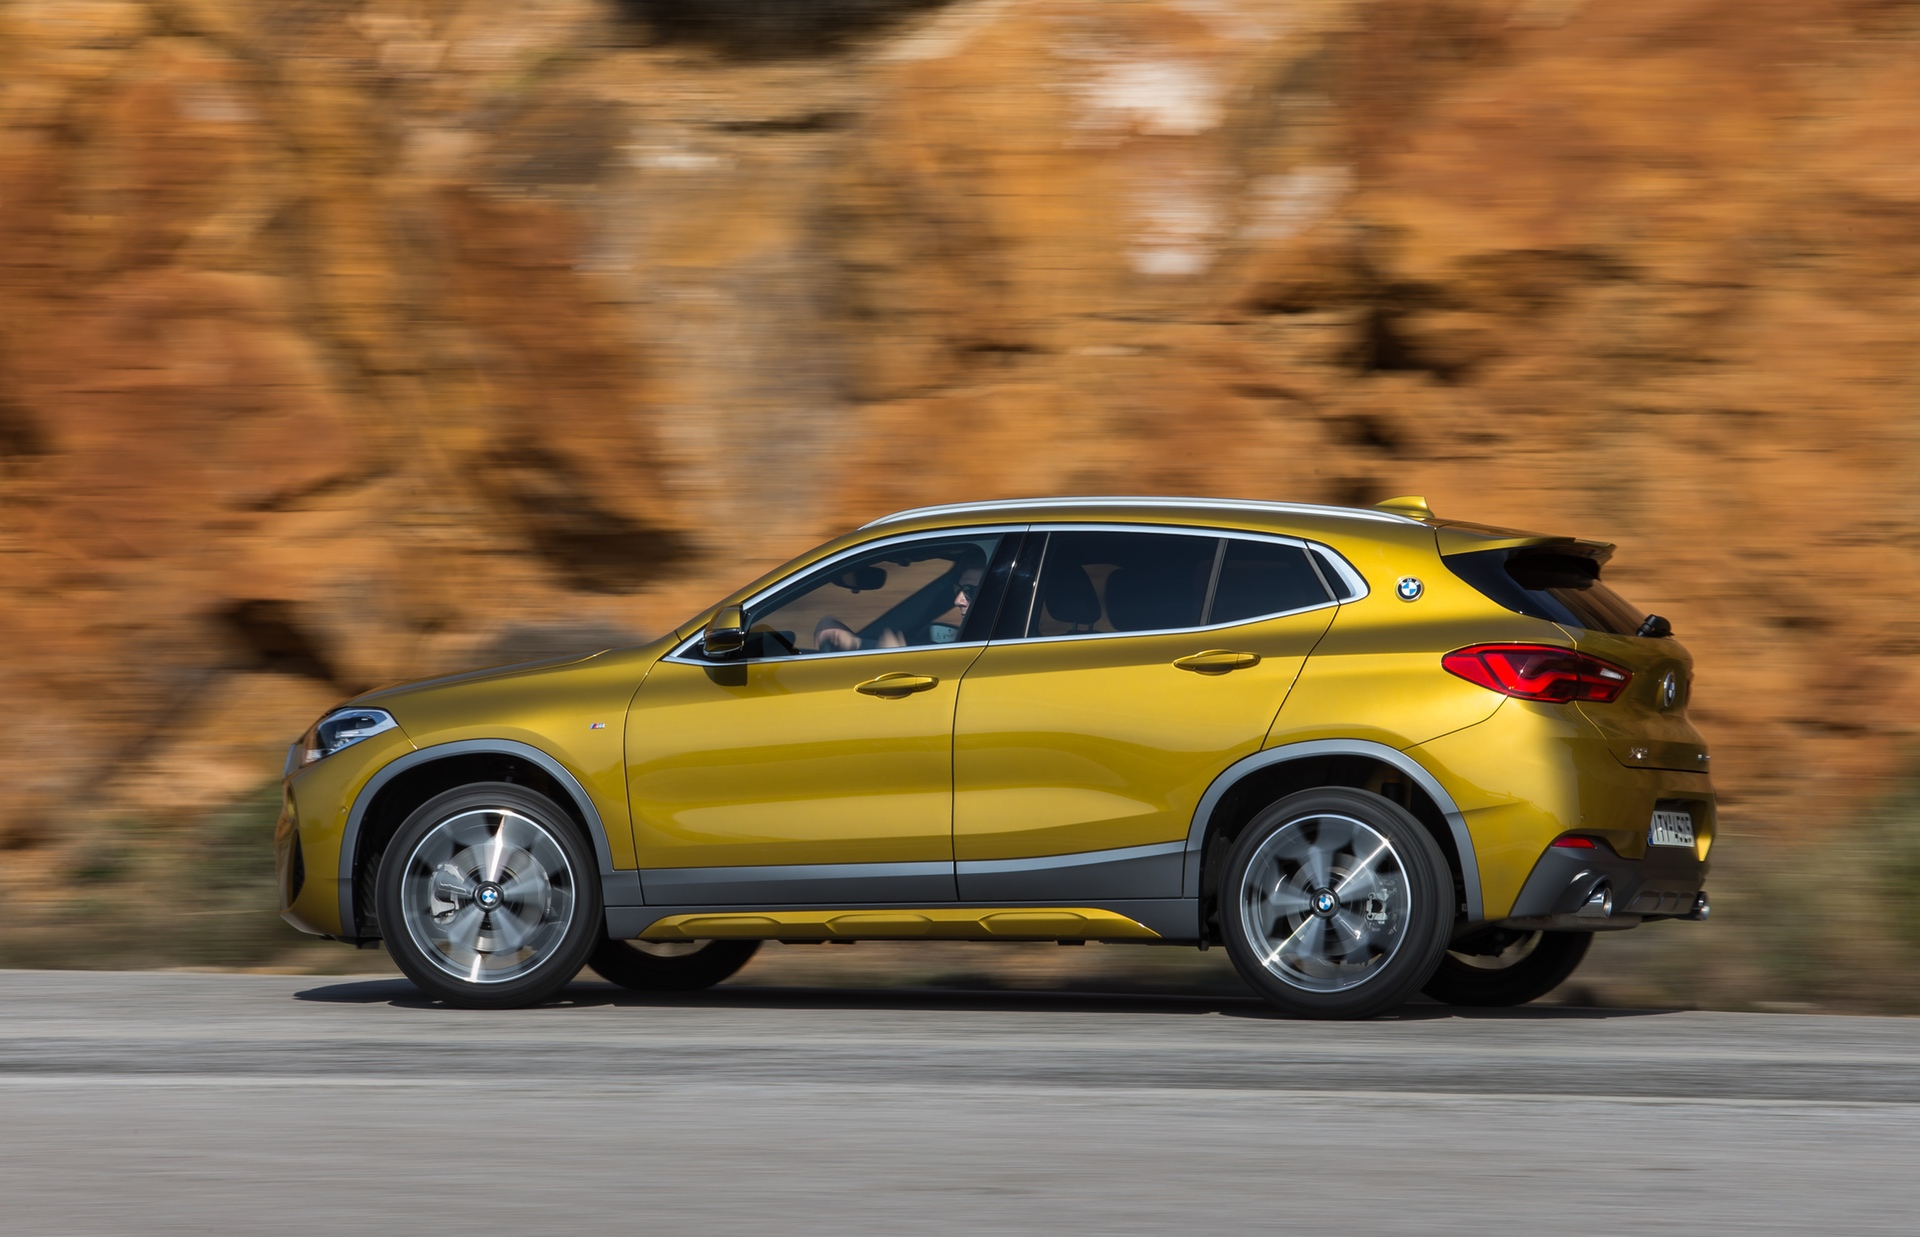 BMW_X2_Greek_presskit_0128